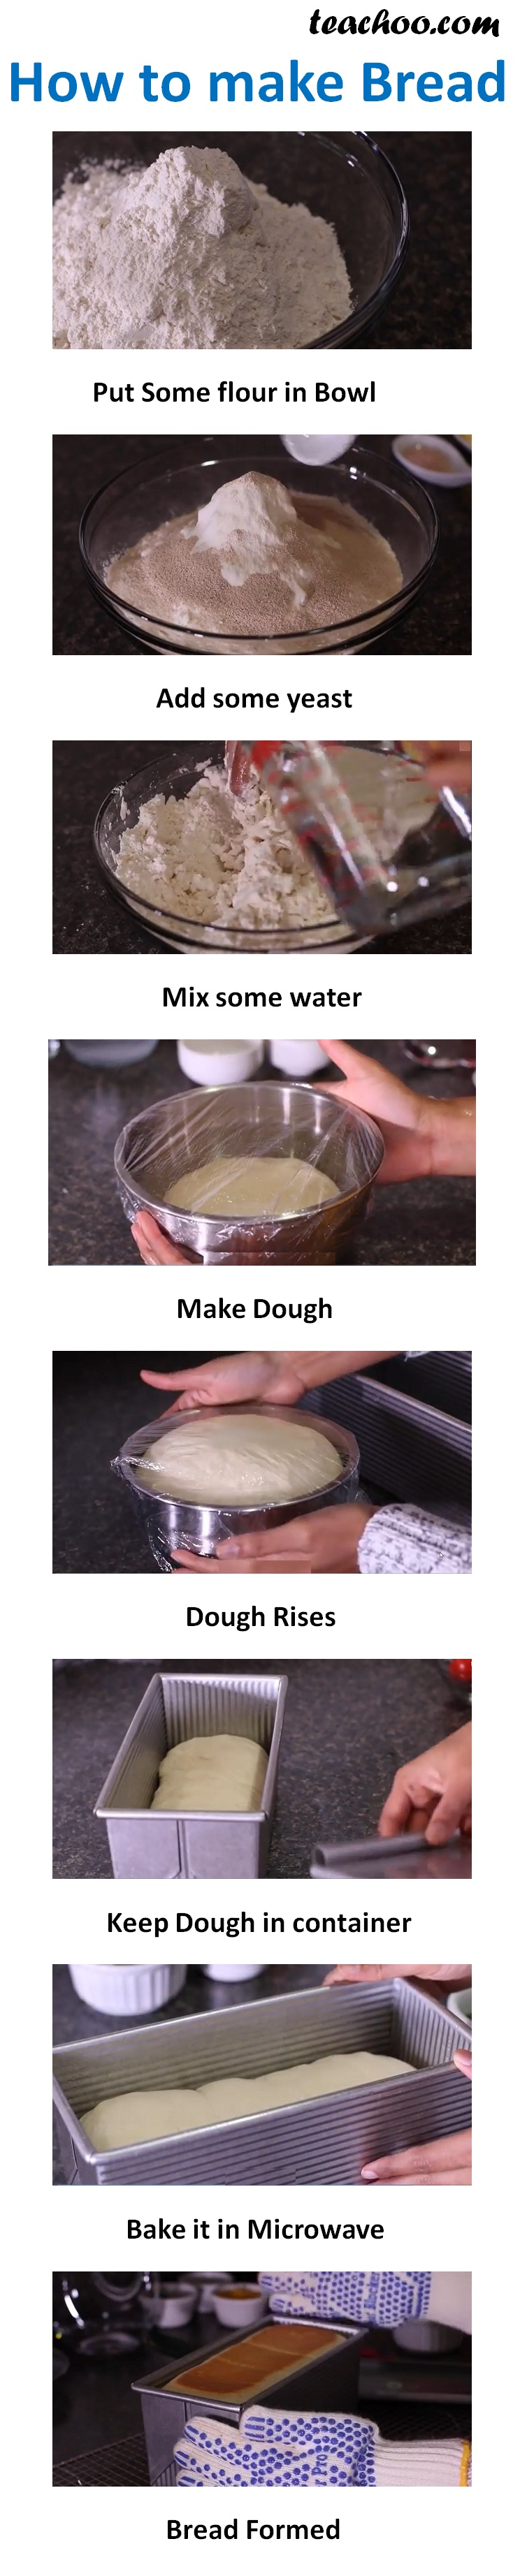 How to make bread - with Steps.jpg